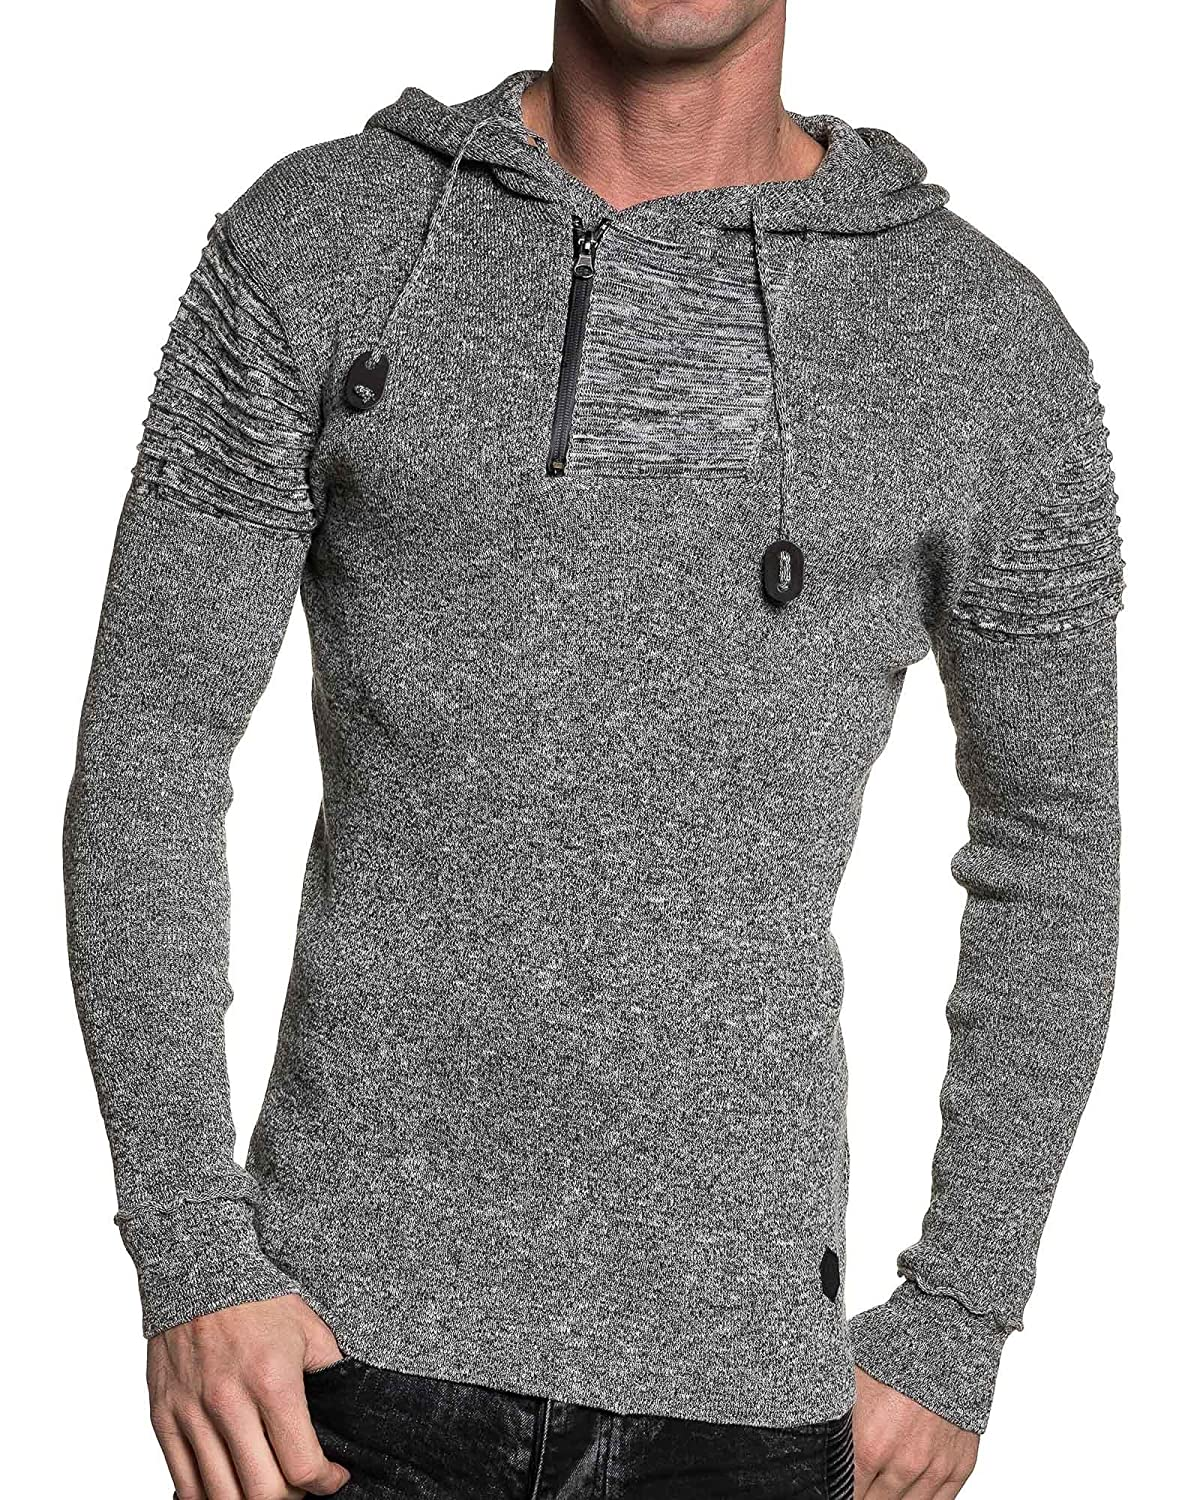 BLZ jeans - fashion sweater gray marl hooded zip neck